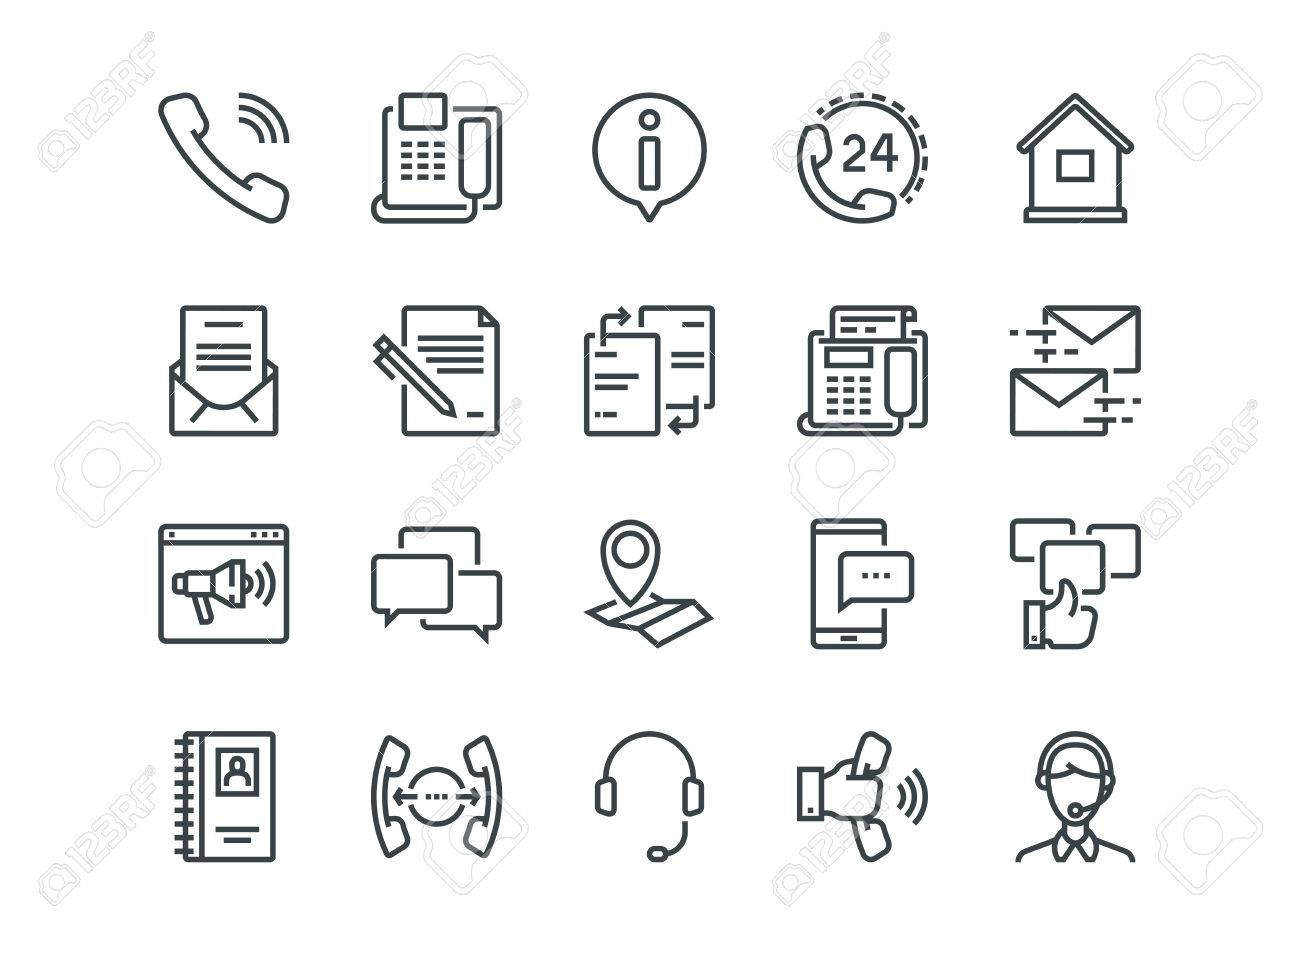 Contact us - Set of outline icons. - 75810958